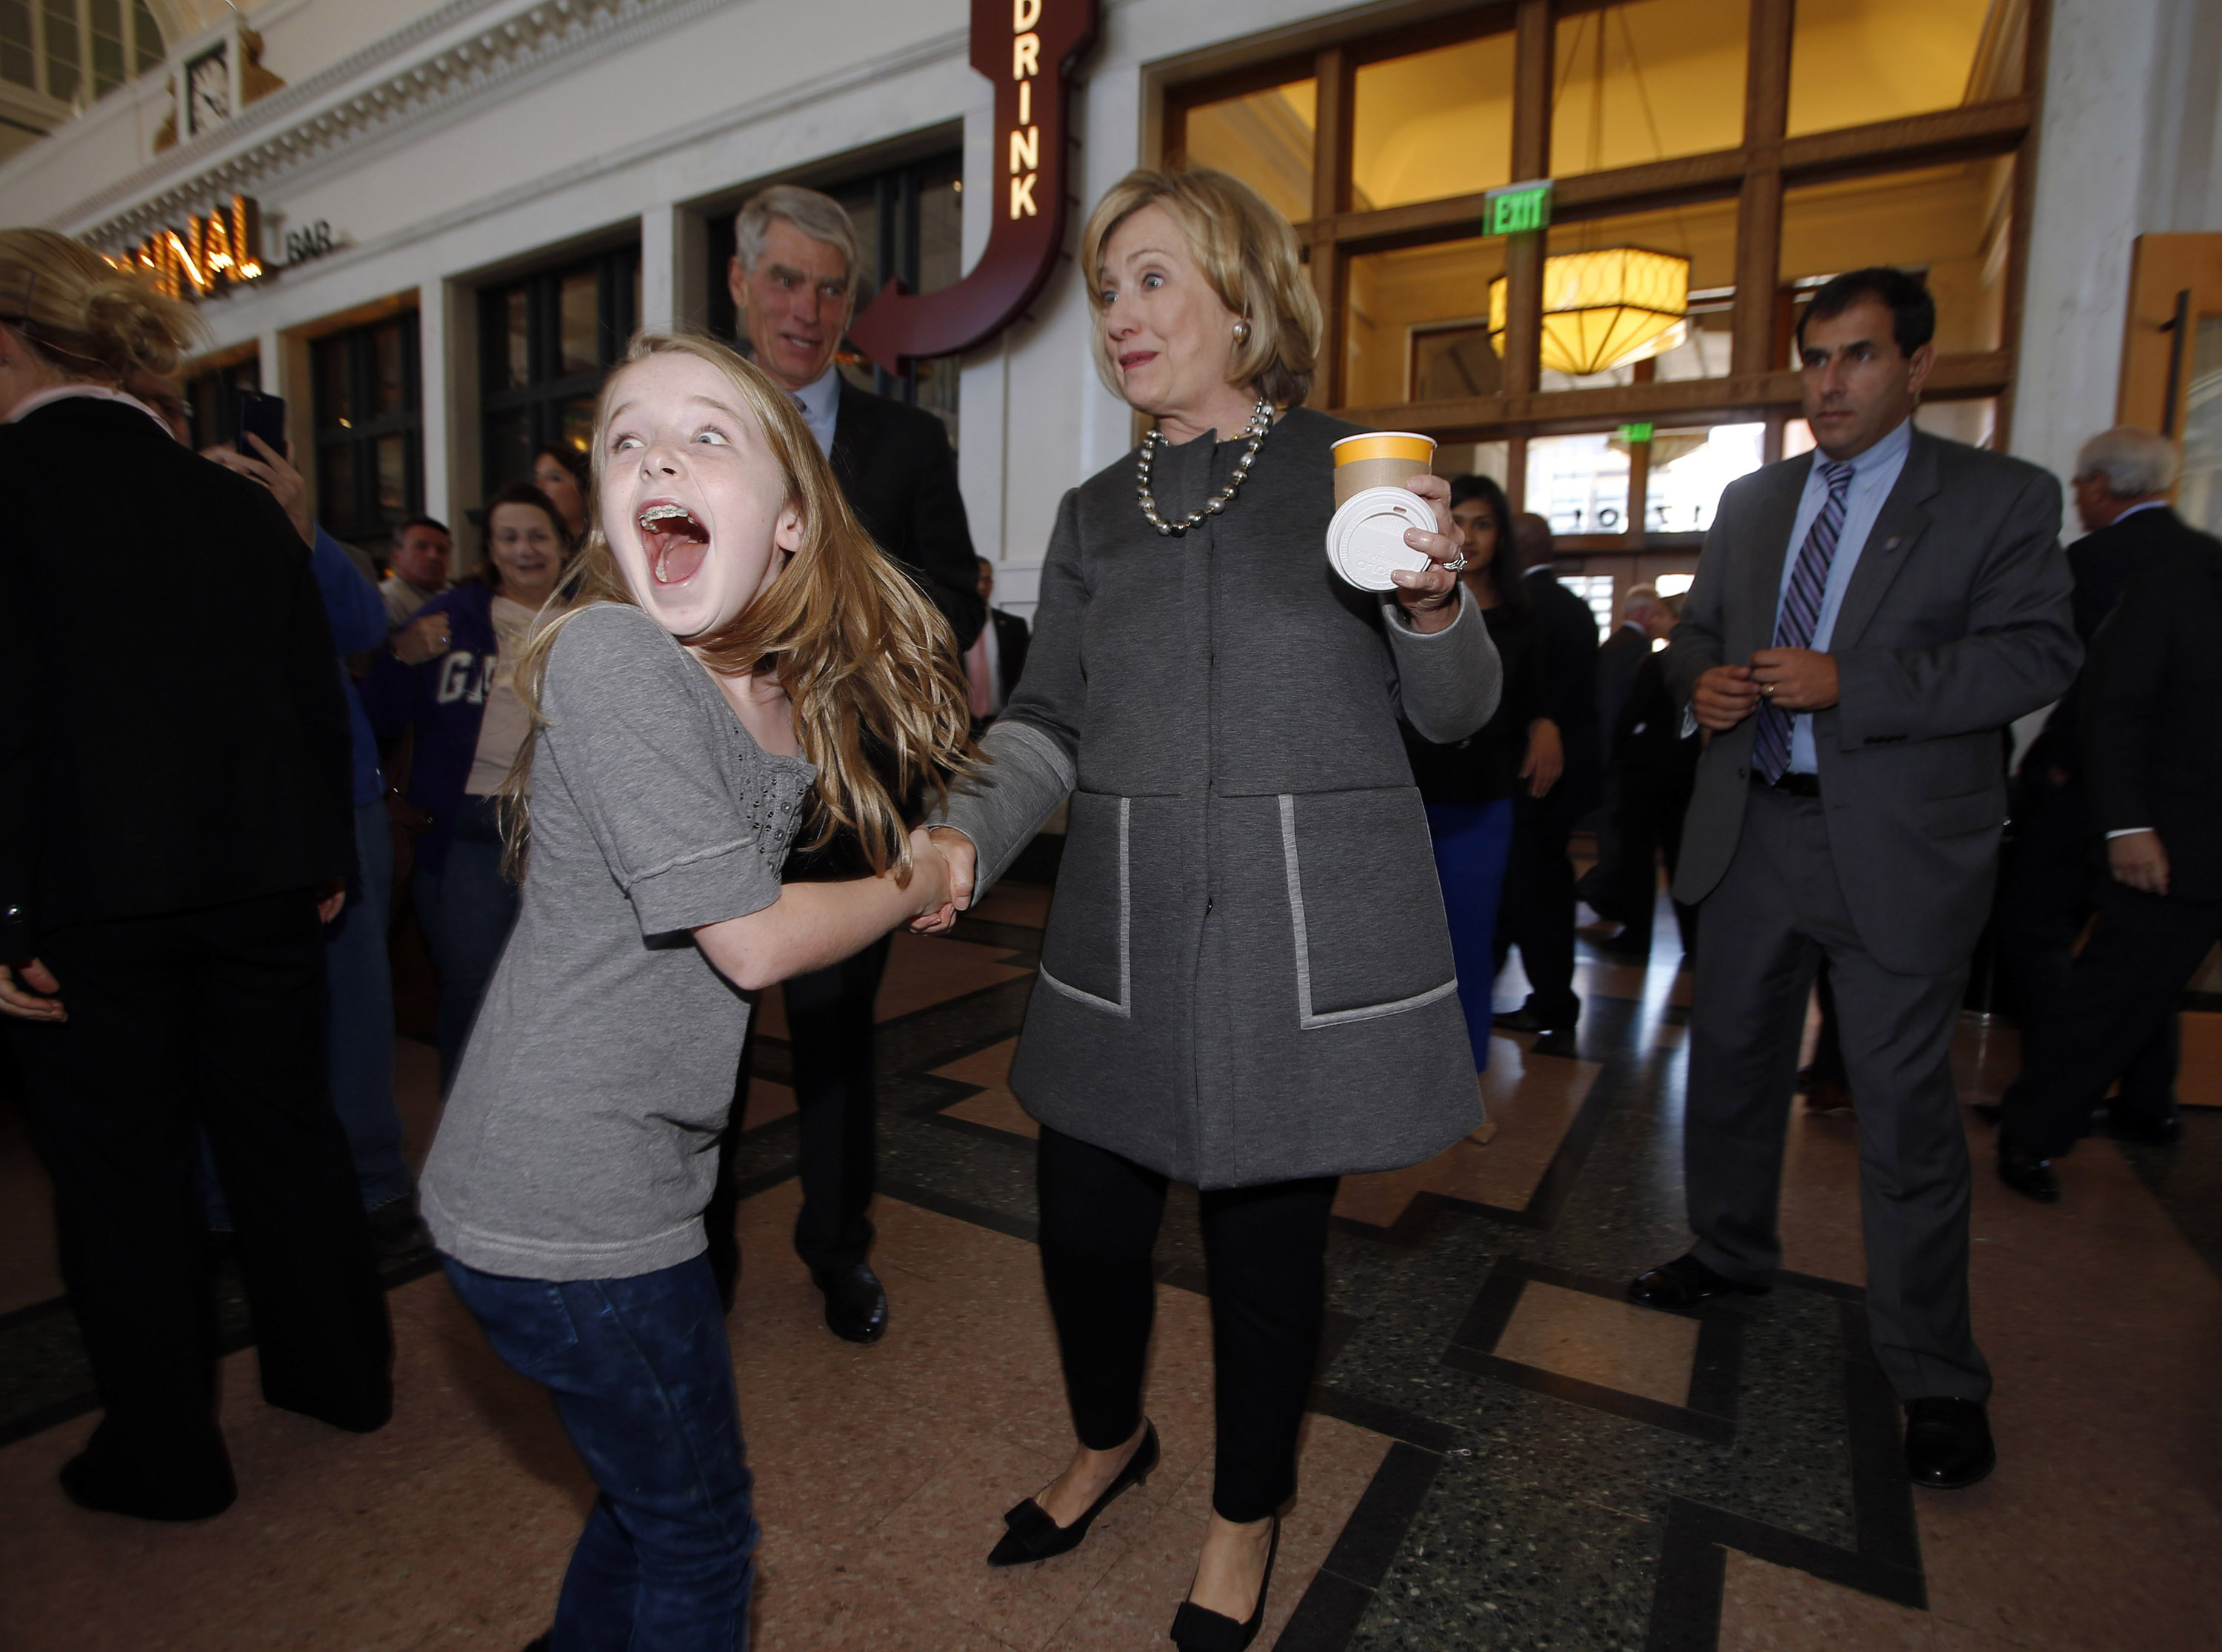 Ten-year-old Macy Friday reacts after meeting Hillary Clinton as she campaigns for U.S. Sen. Mark Udall, D-Colo., back, during a stop in the newly-renovated Union Station in Denver on Oct. 13, 2014.